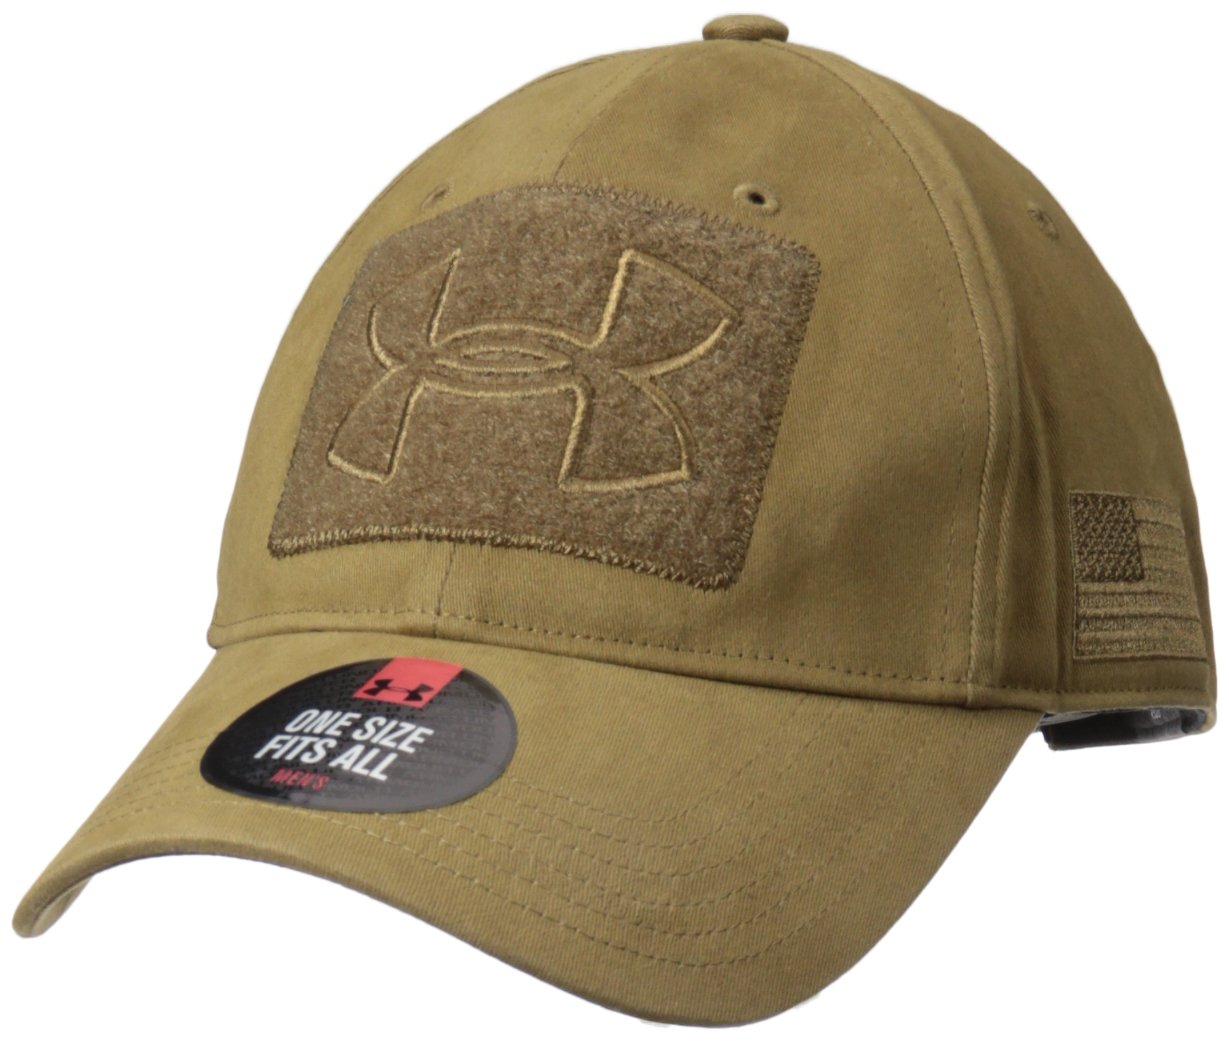 Under Armour Tactical Hat for Men Tactical Baseball Cap Coyote Brown ... ab98a30c1a4